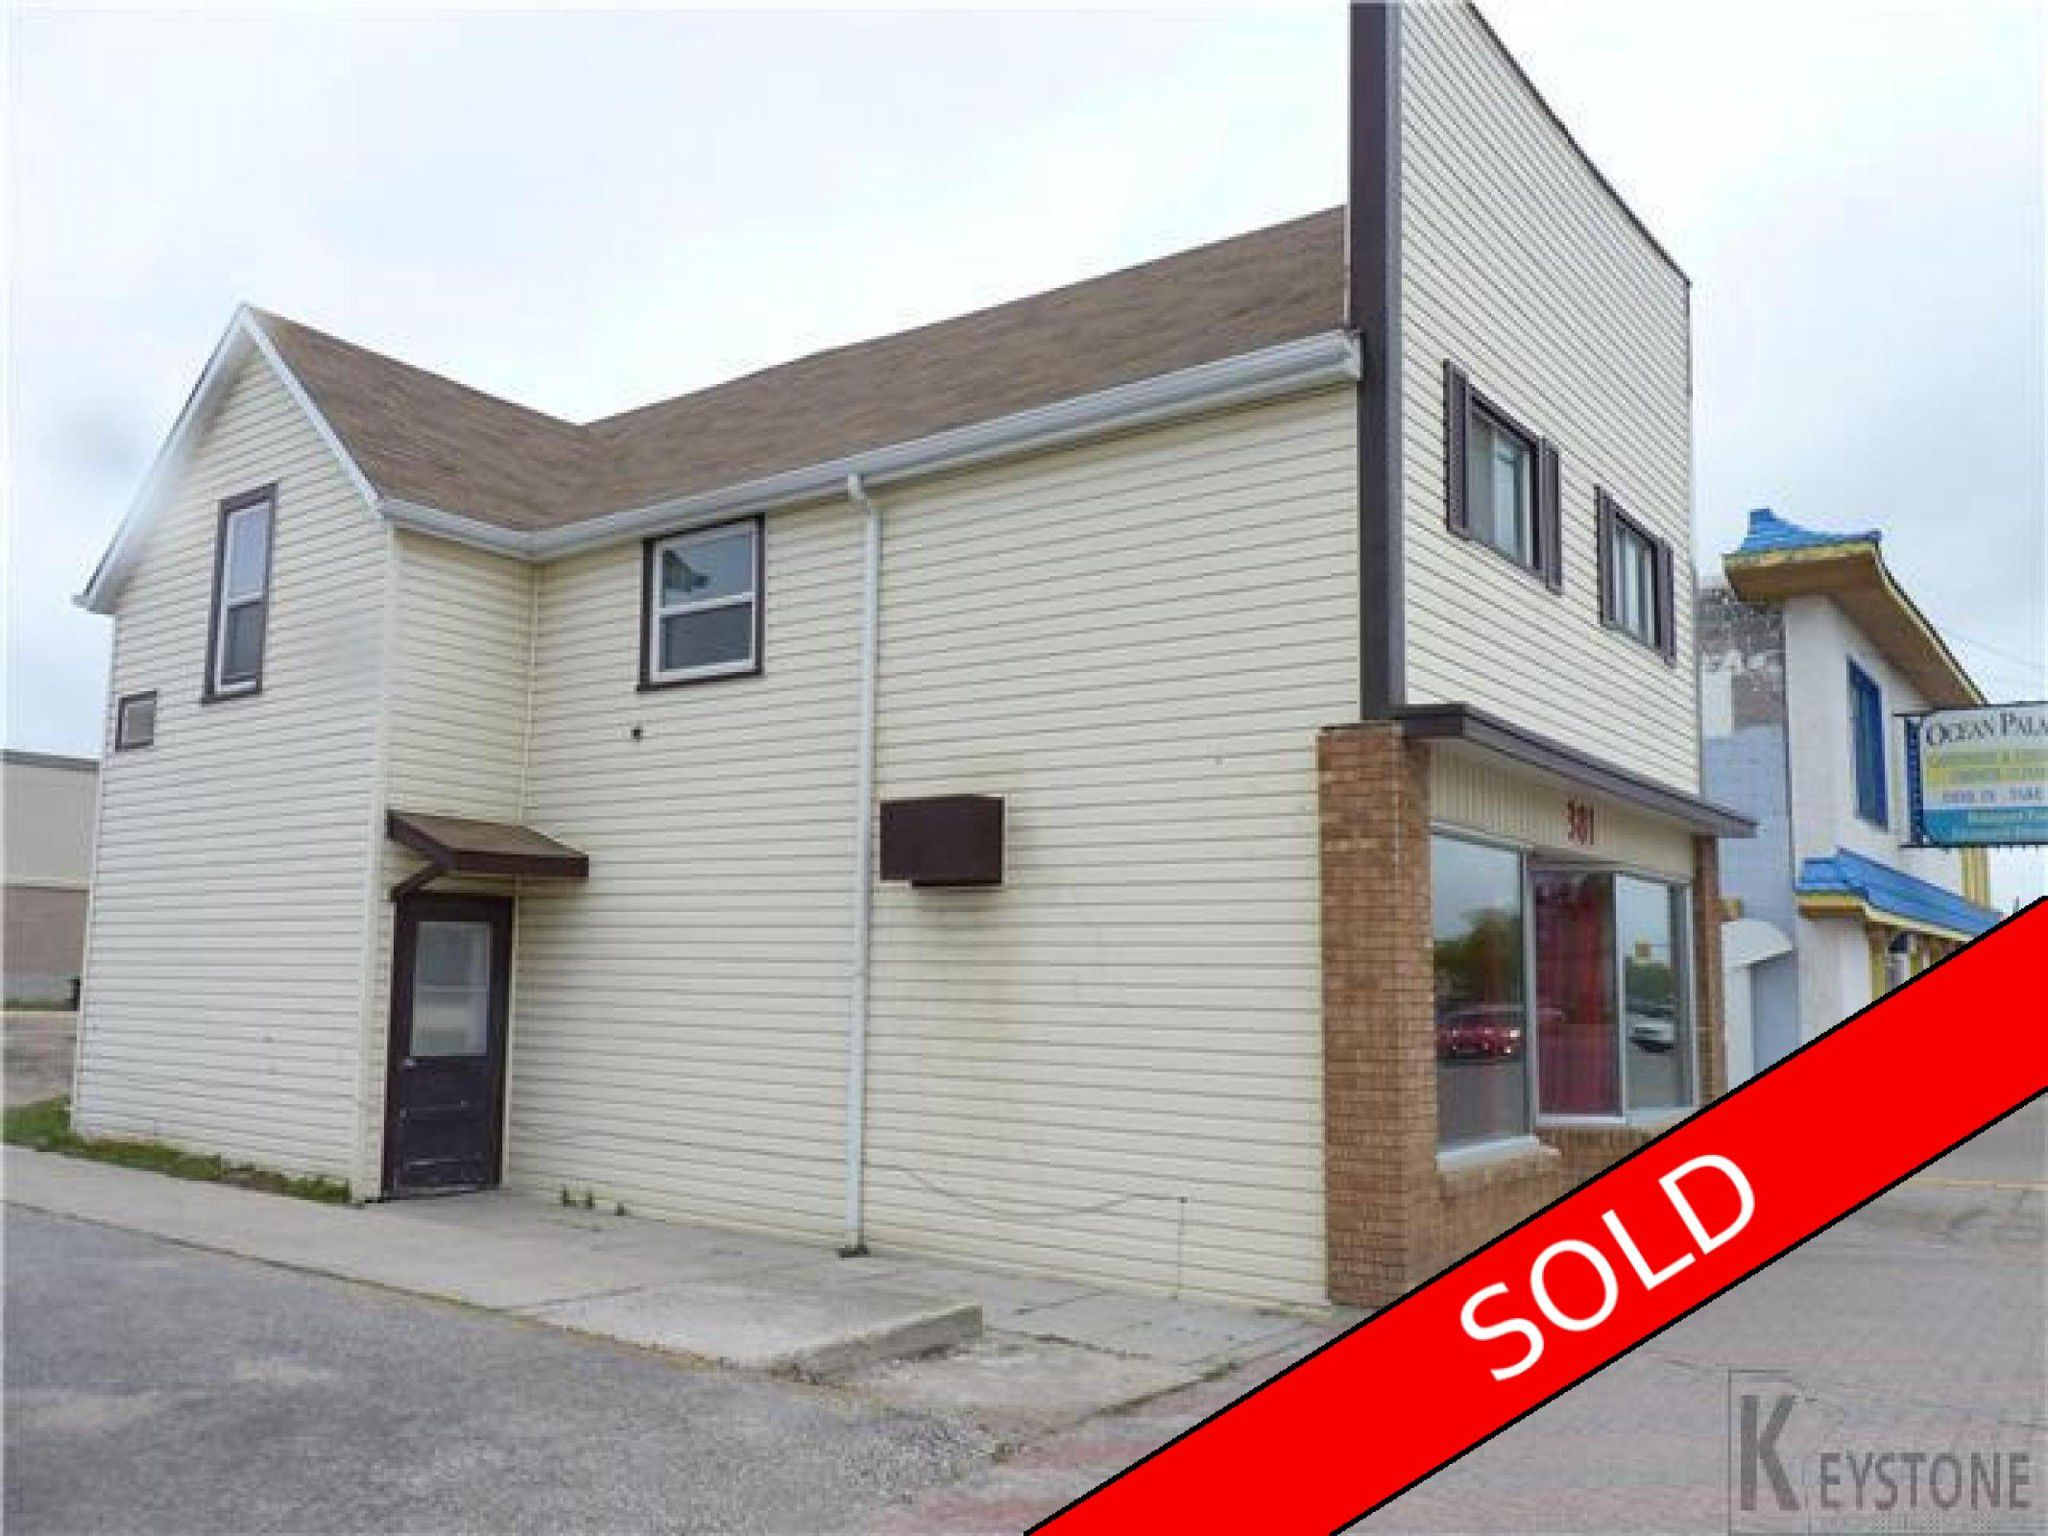 Main Photo: 381 Main ST in Selkirk, MB R1A0z1: Business for sale (1670)  : MLS®# 1713687